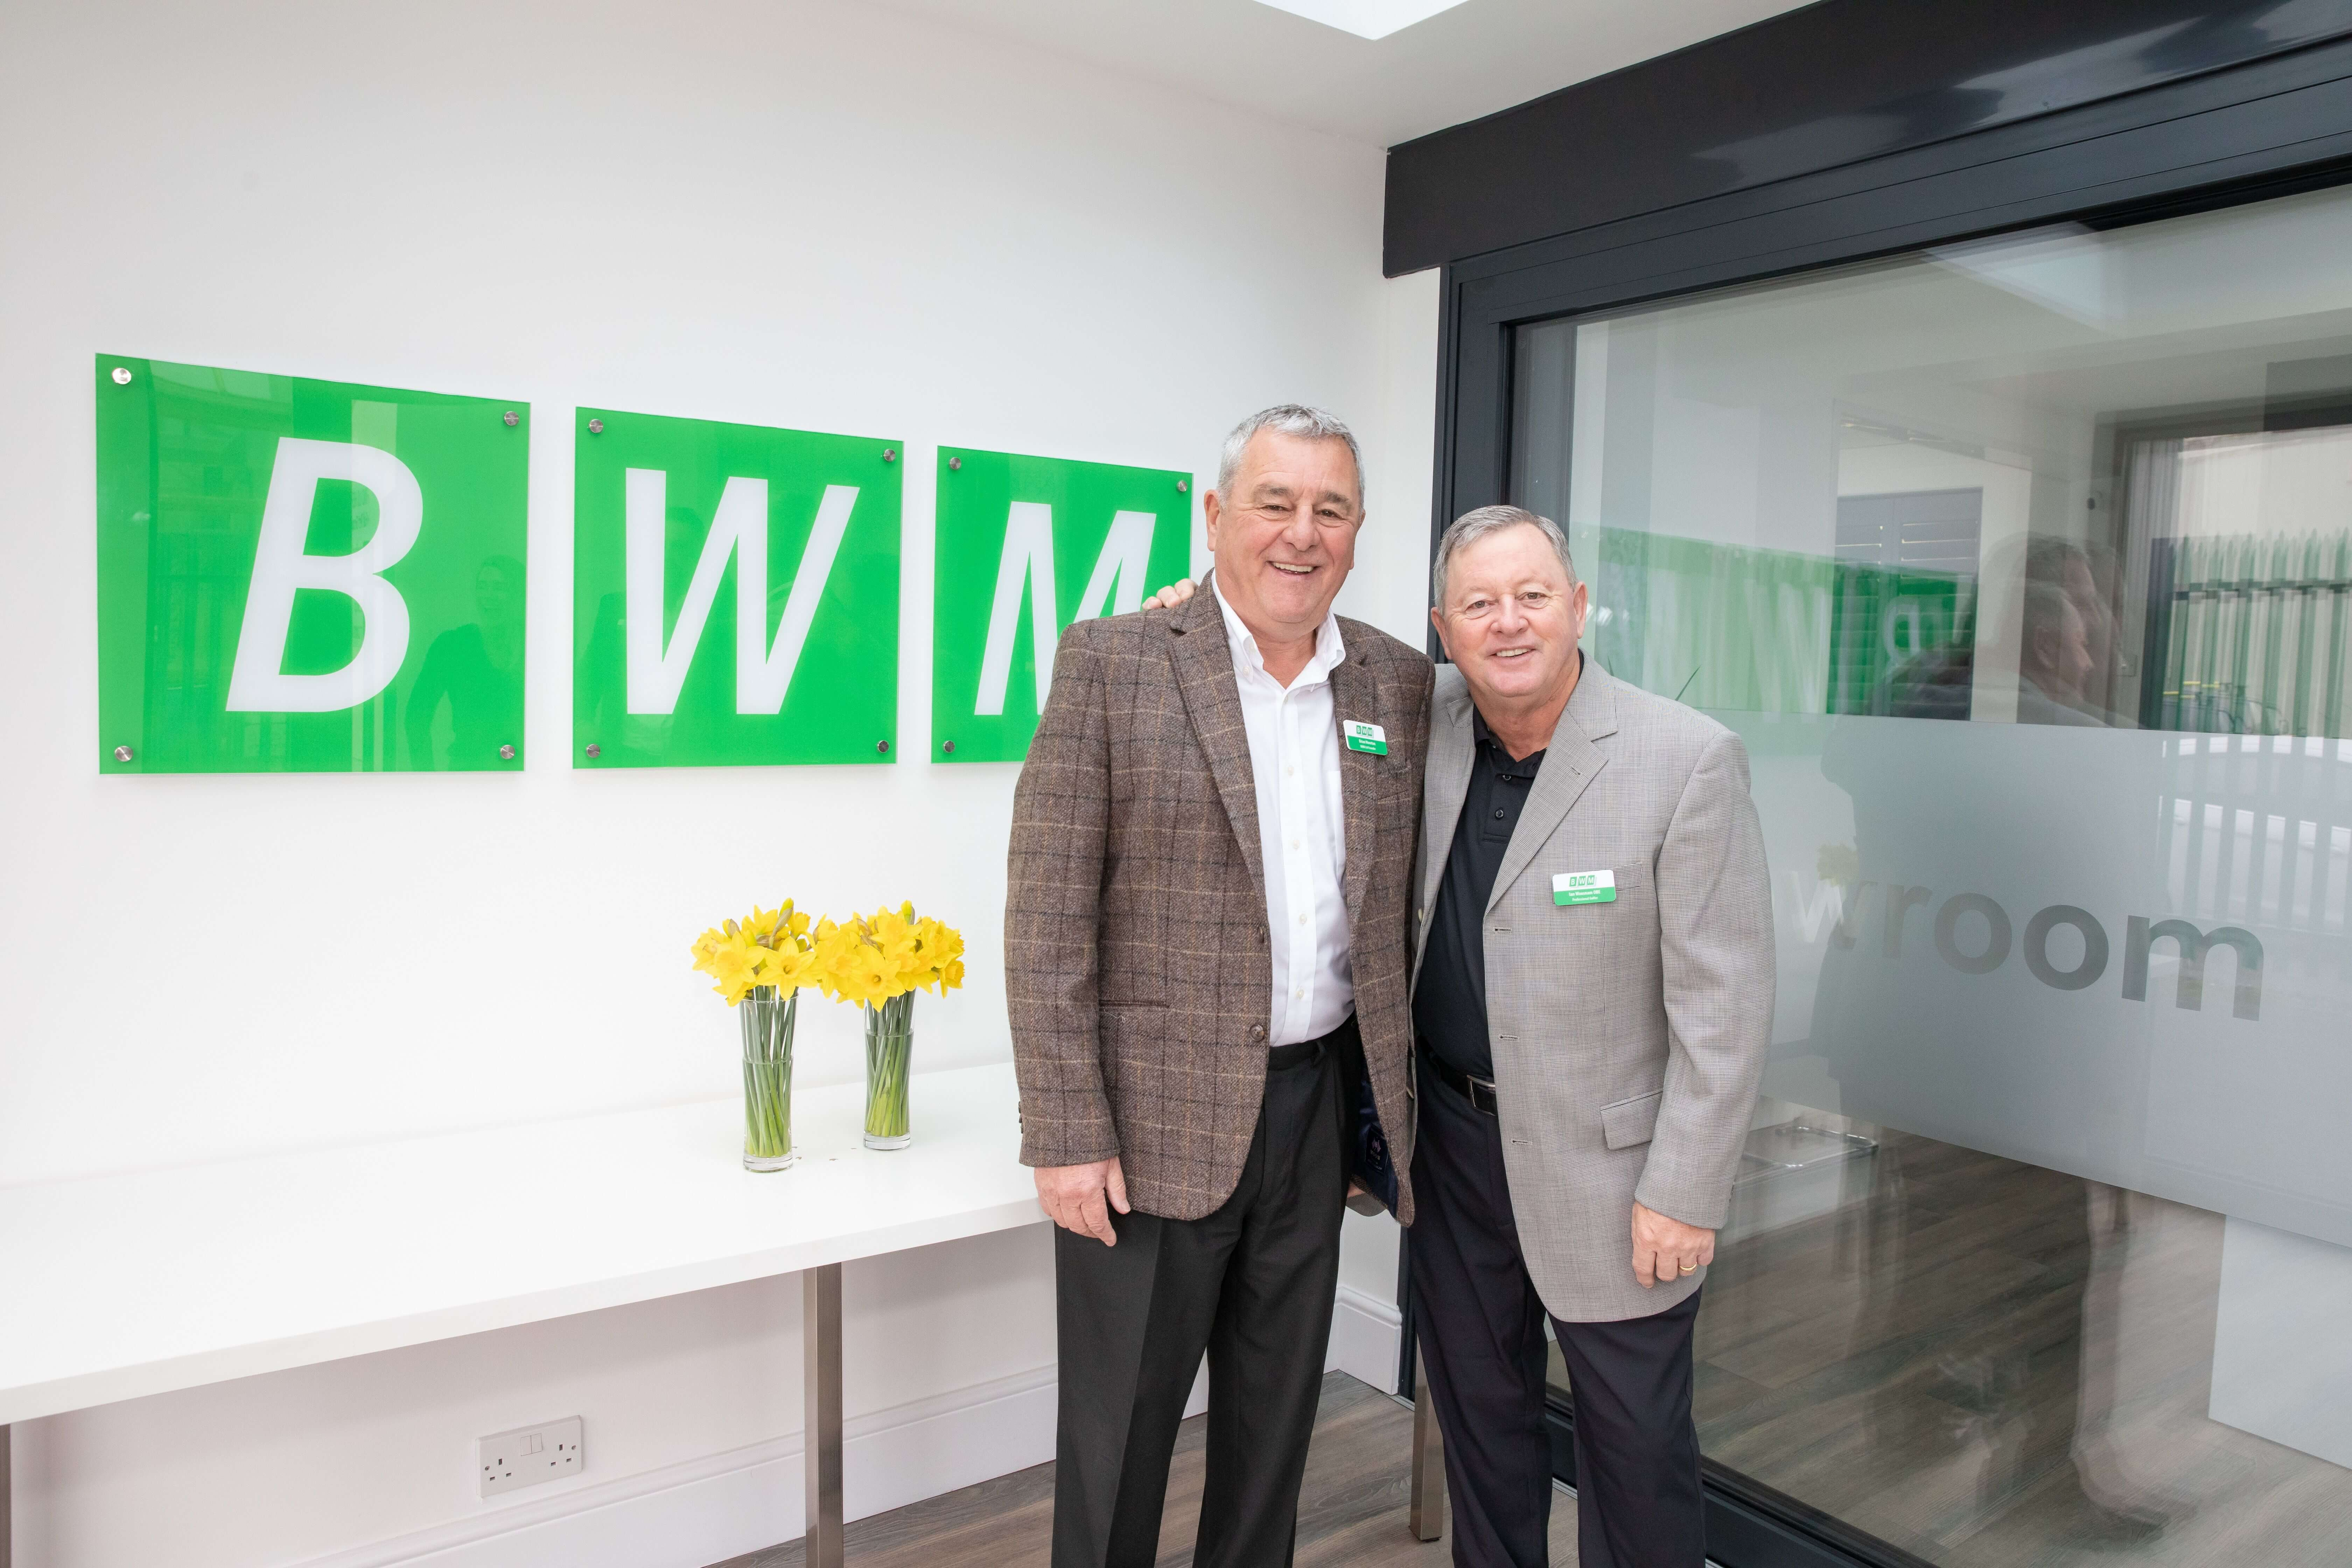 BWM New Showroom, Double Glazing Cardiff